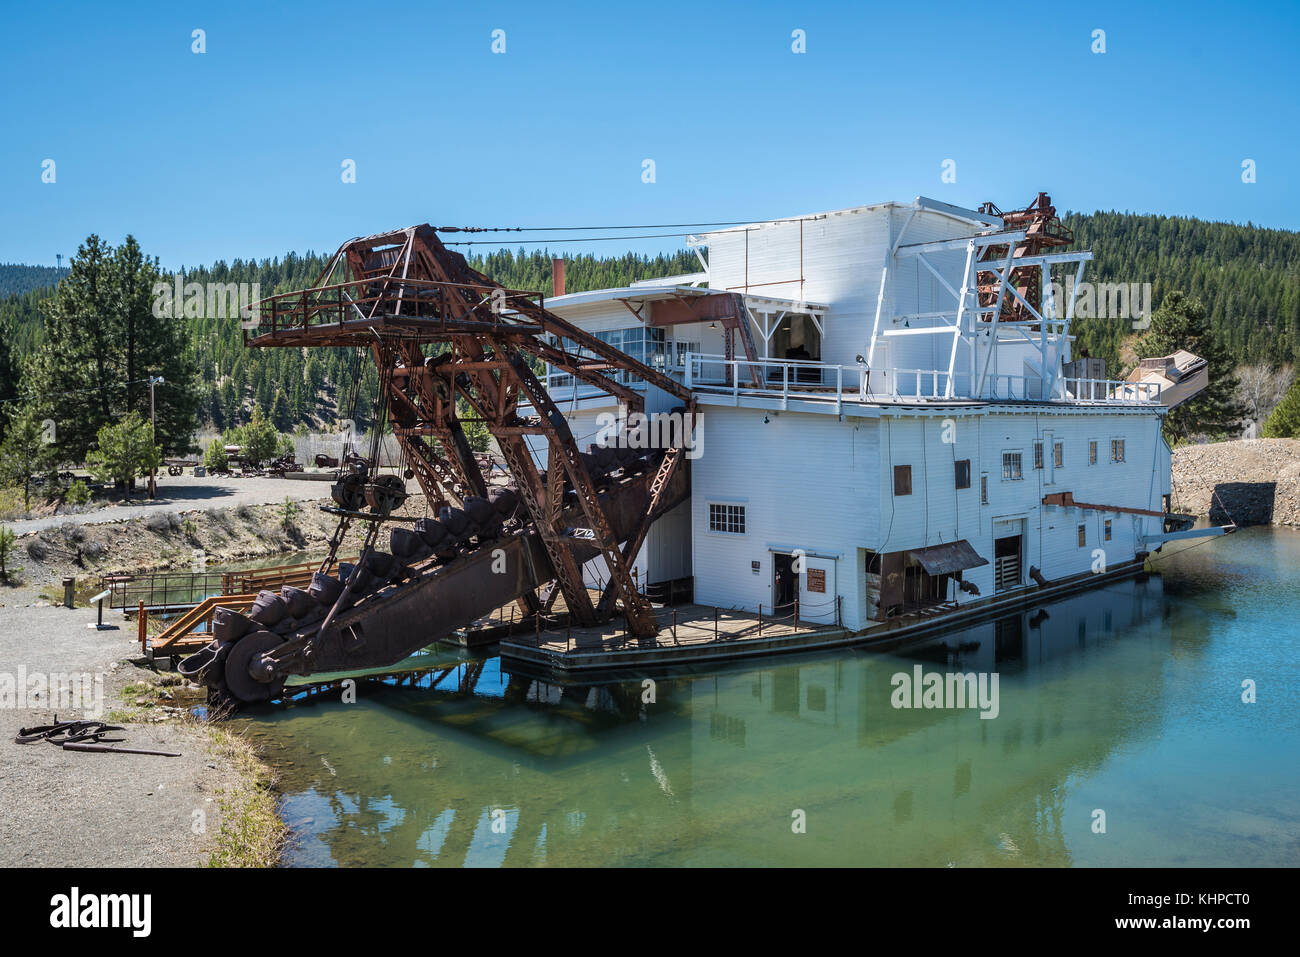 American Ghost Towns Mining Stock Photos & American Ghost